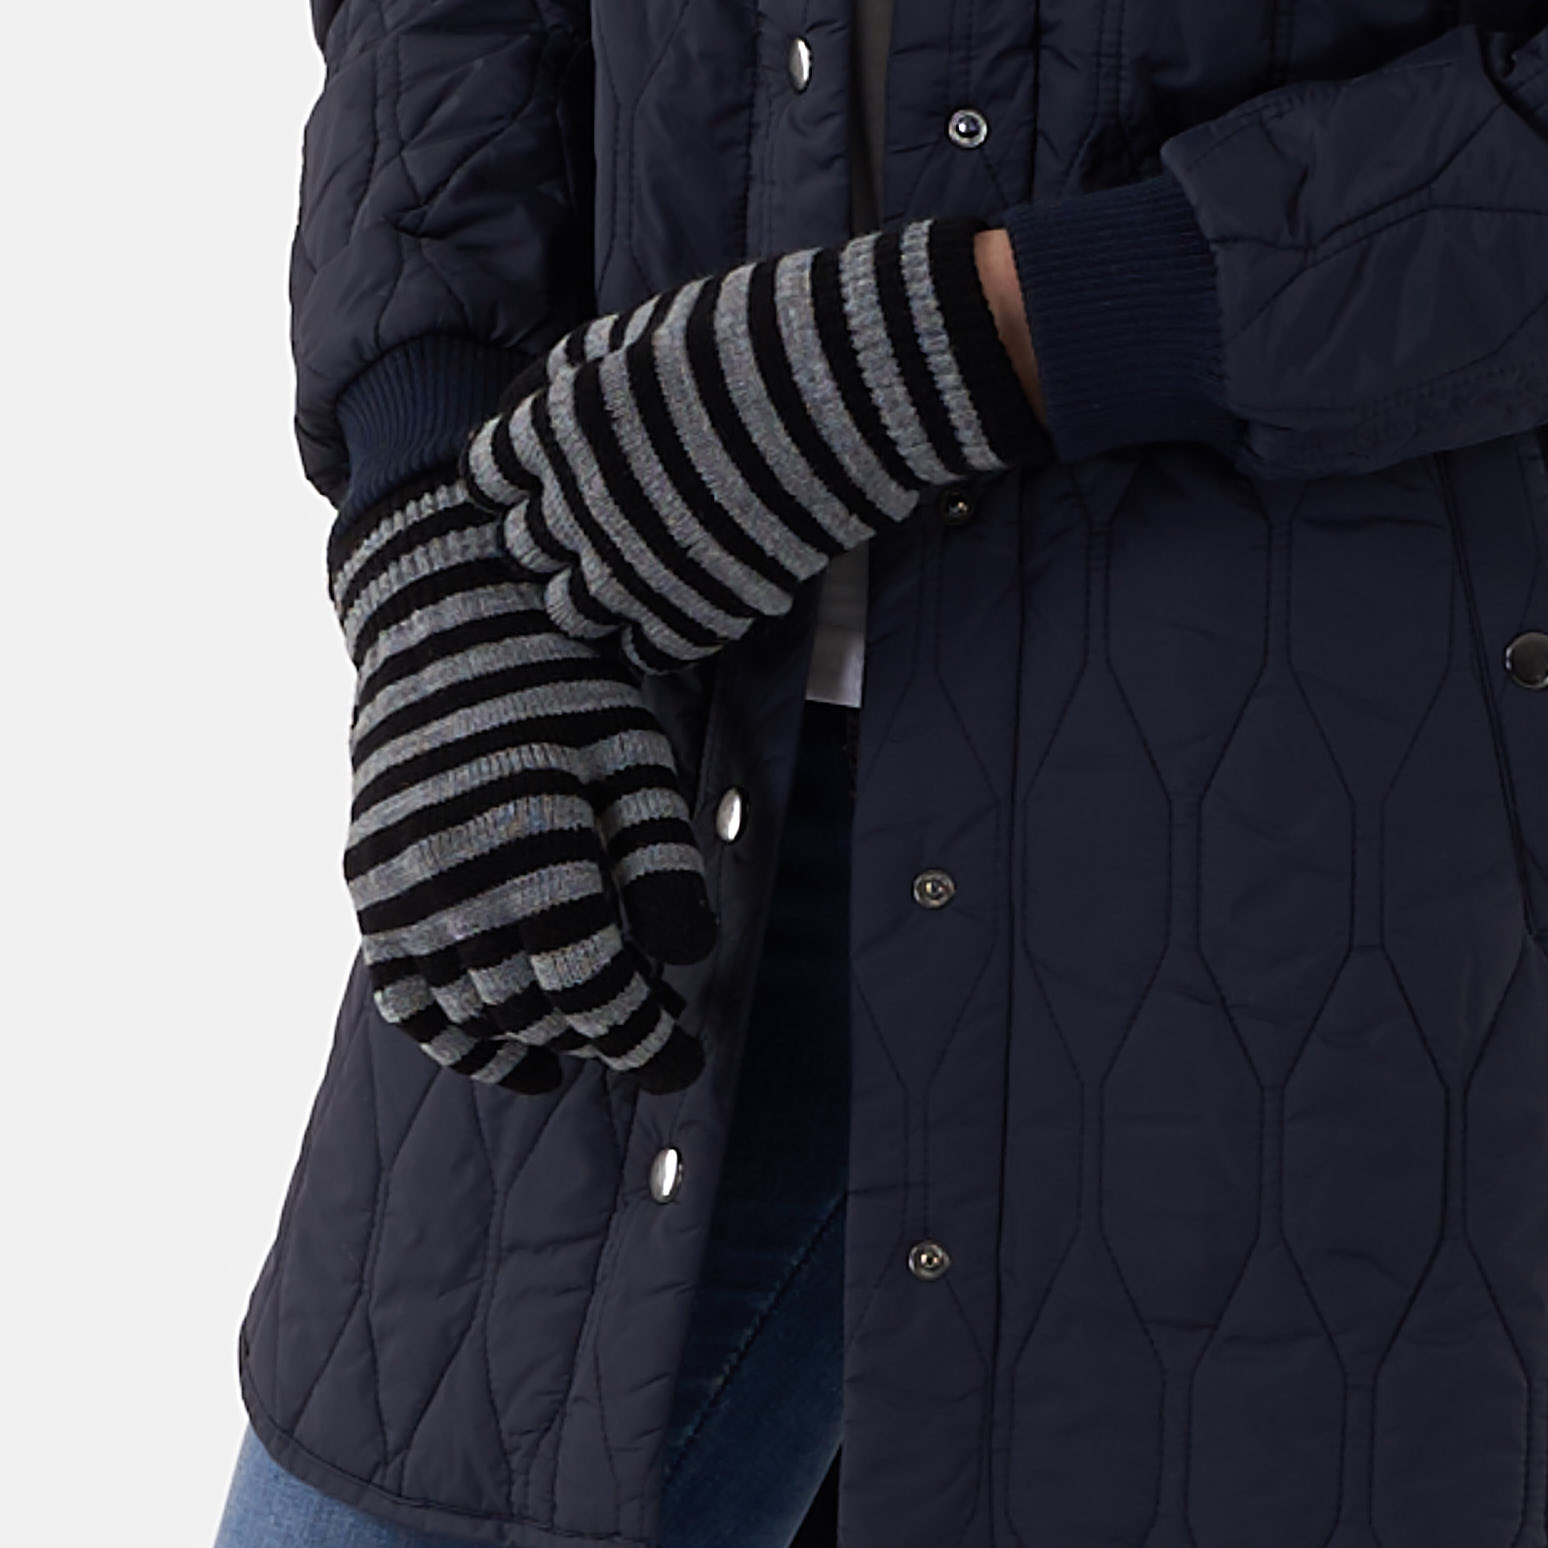 Pieces - Pcnew buddy stripe glove - Accessories til hende - Sort - O/S